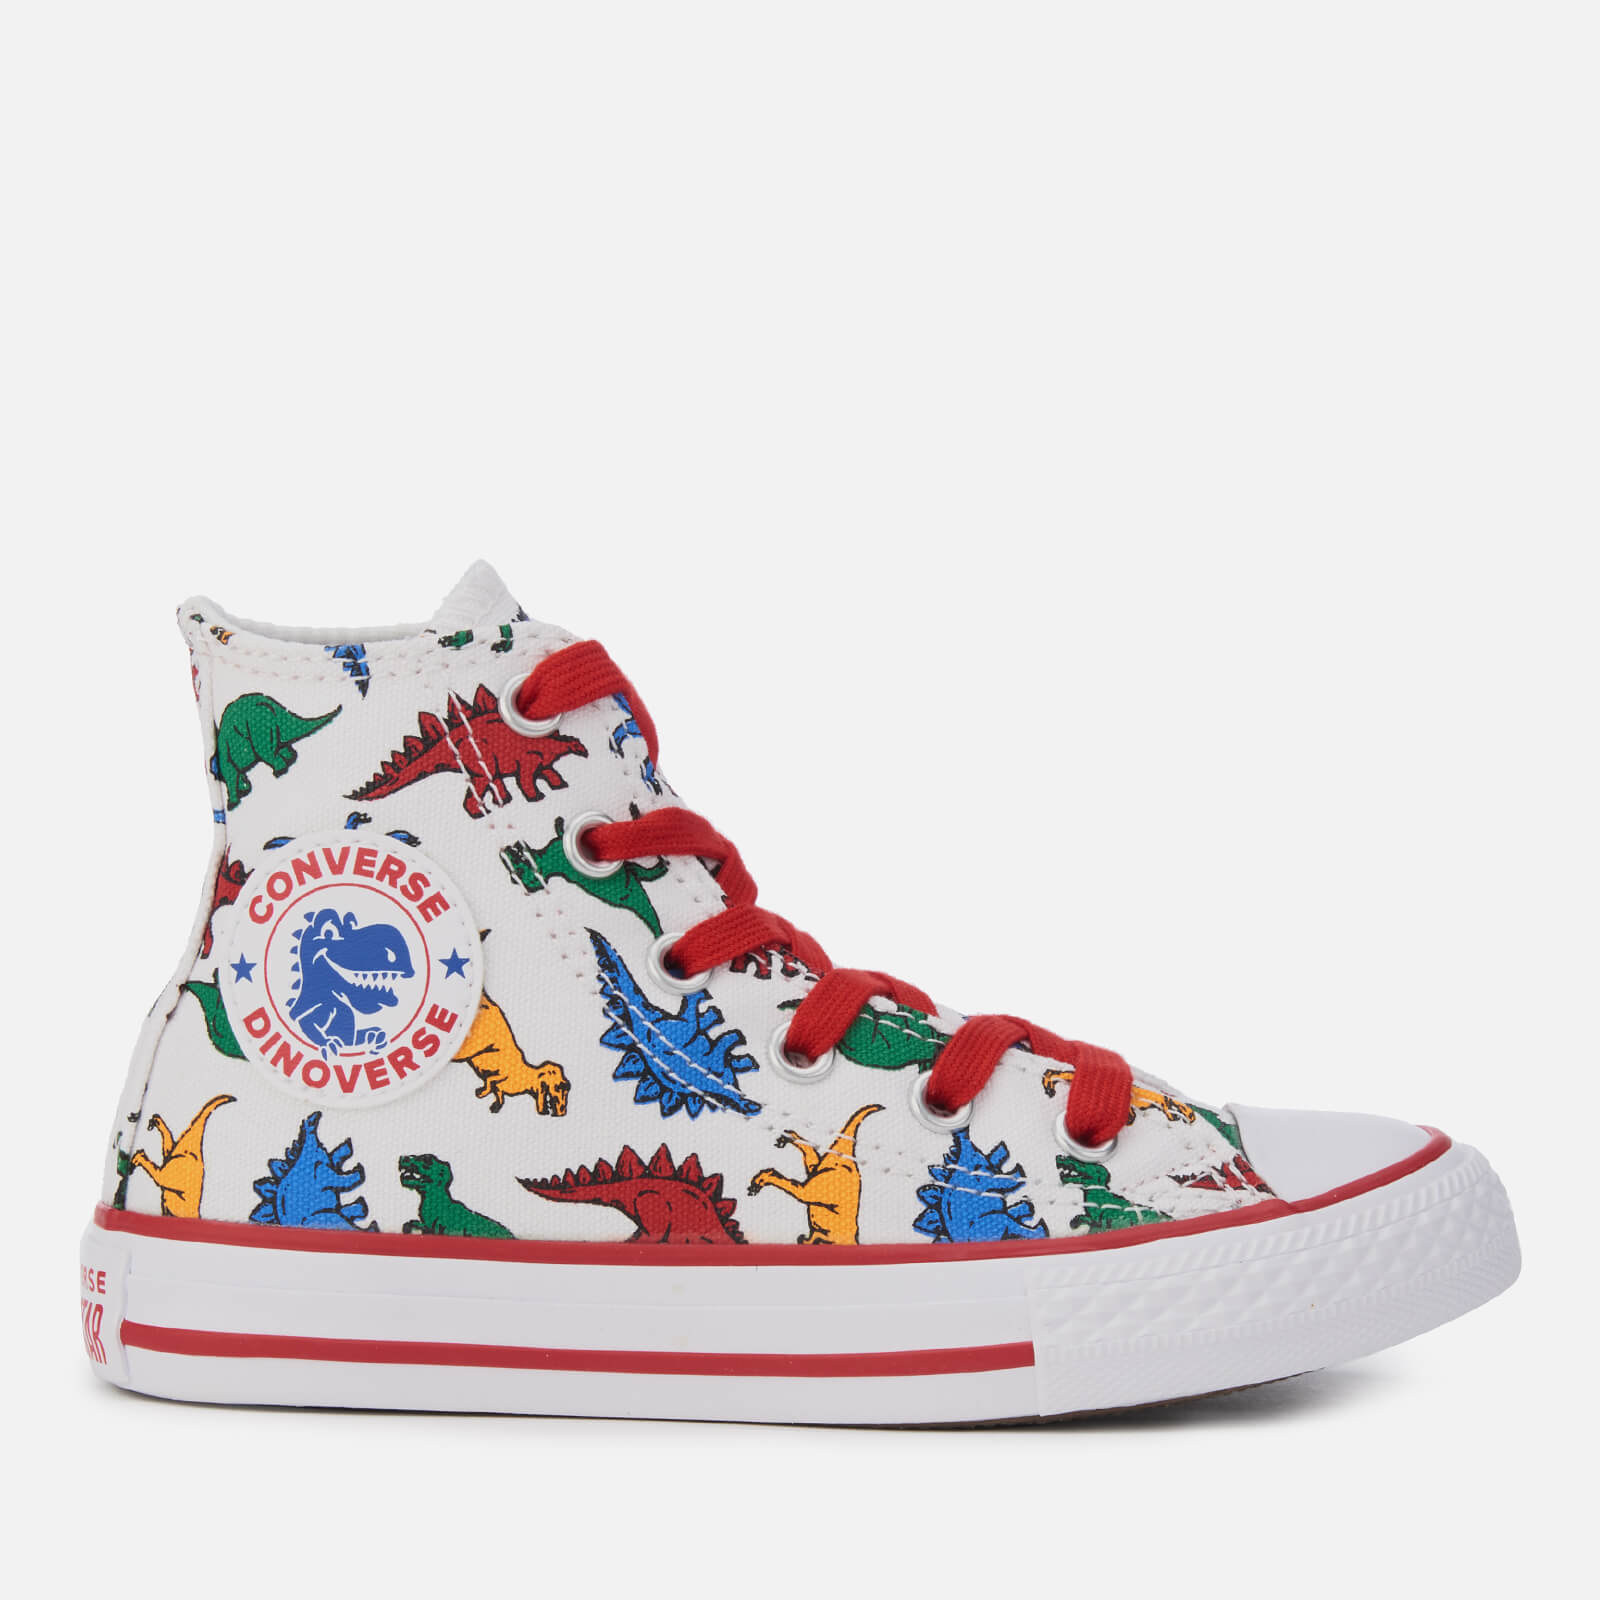 998259895eb5 Converse Kids  Chuck Taylor All Star Hi-Top Trainers - White Enamel Red Totally  Blue Junior Clothing